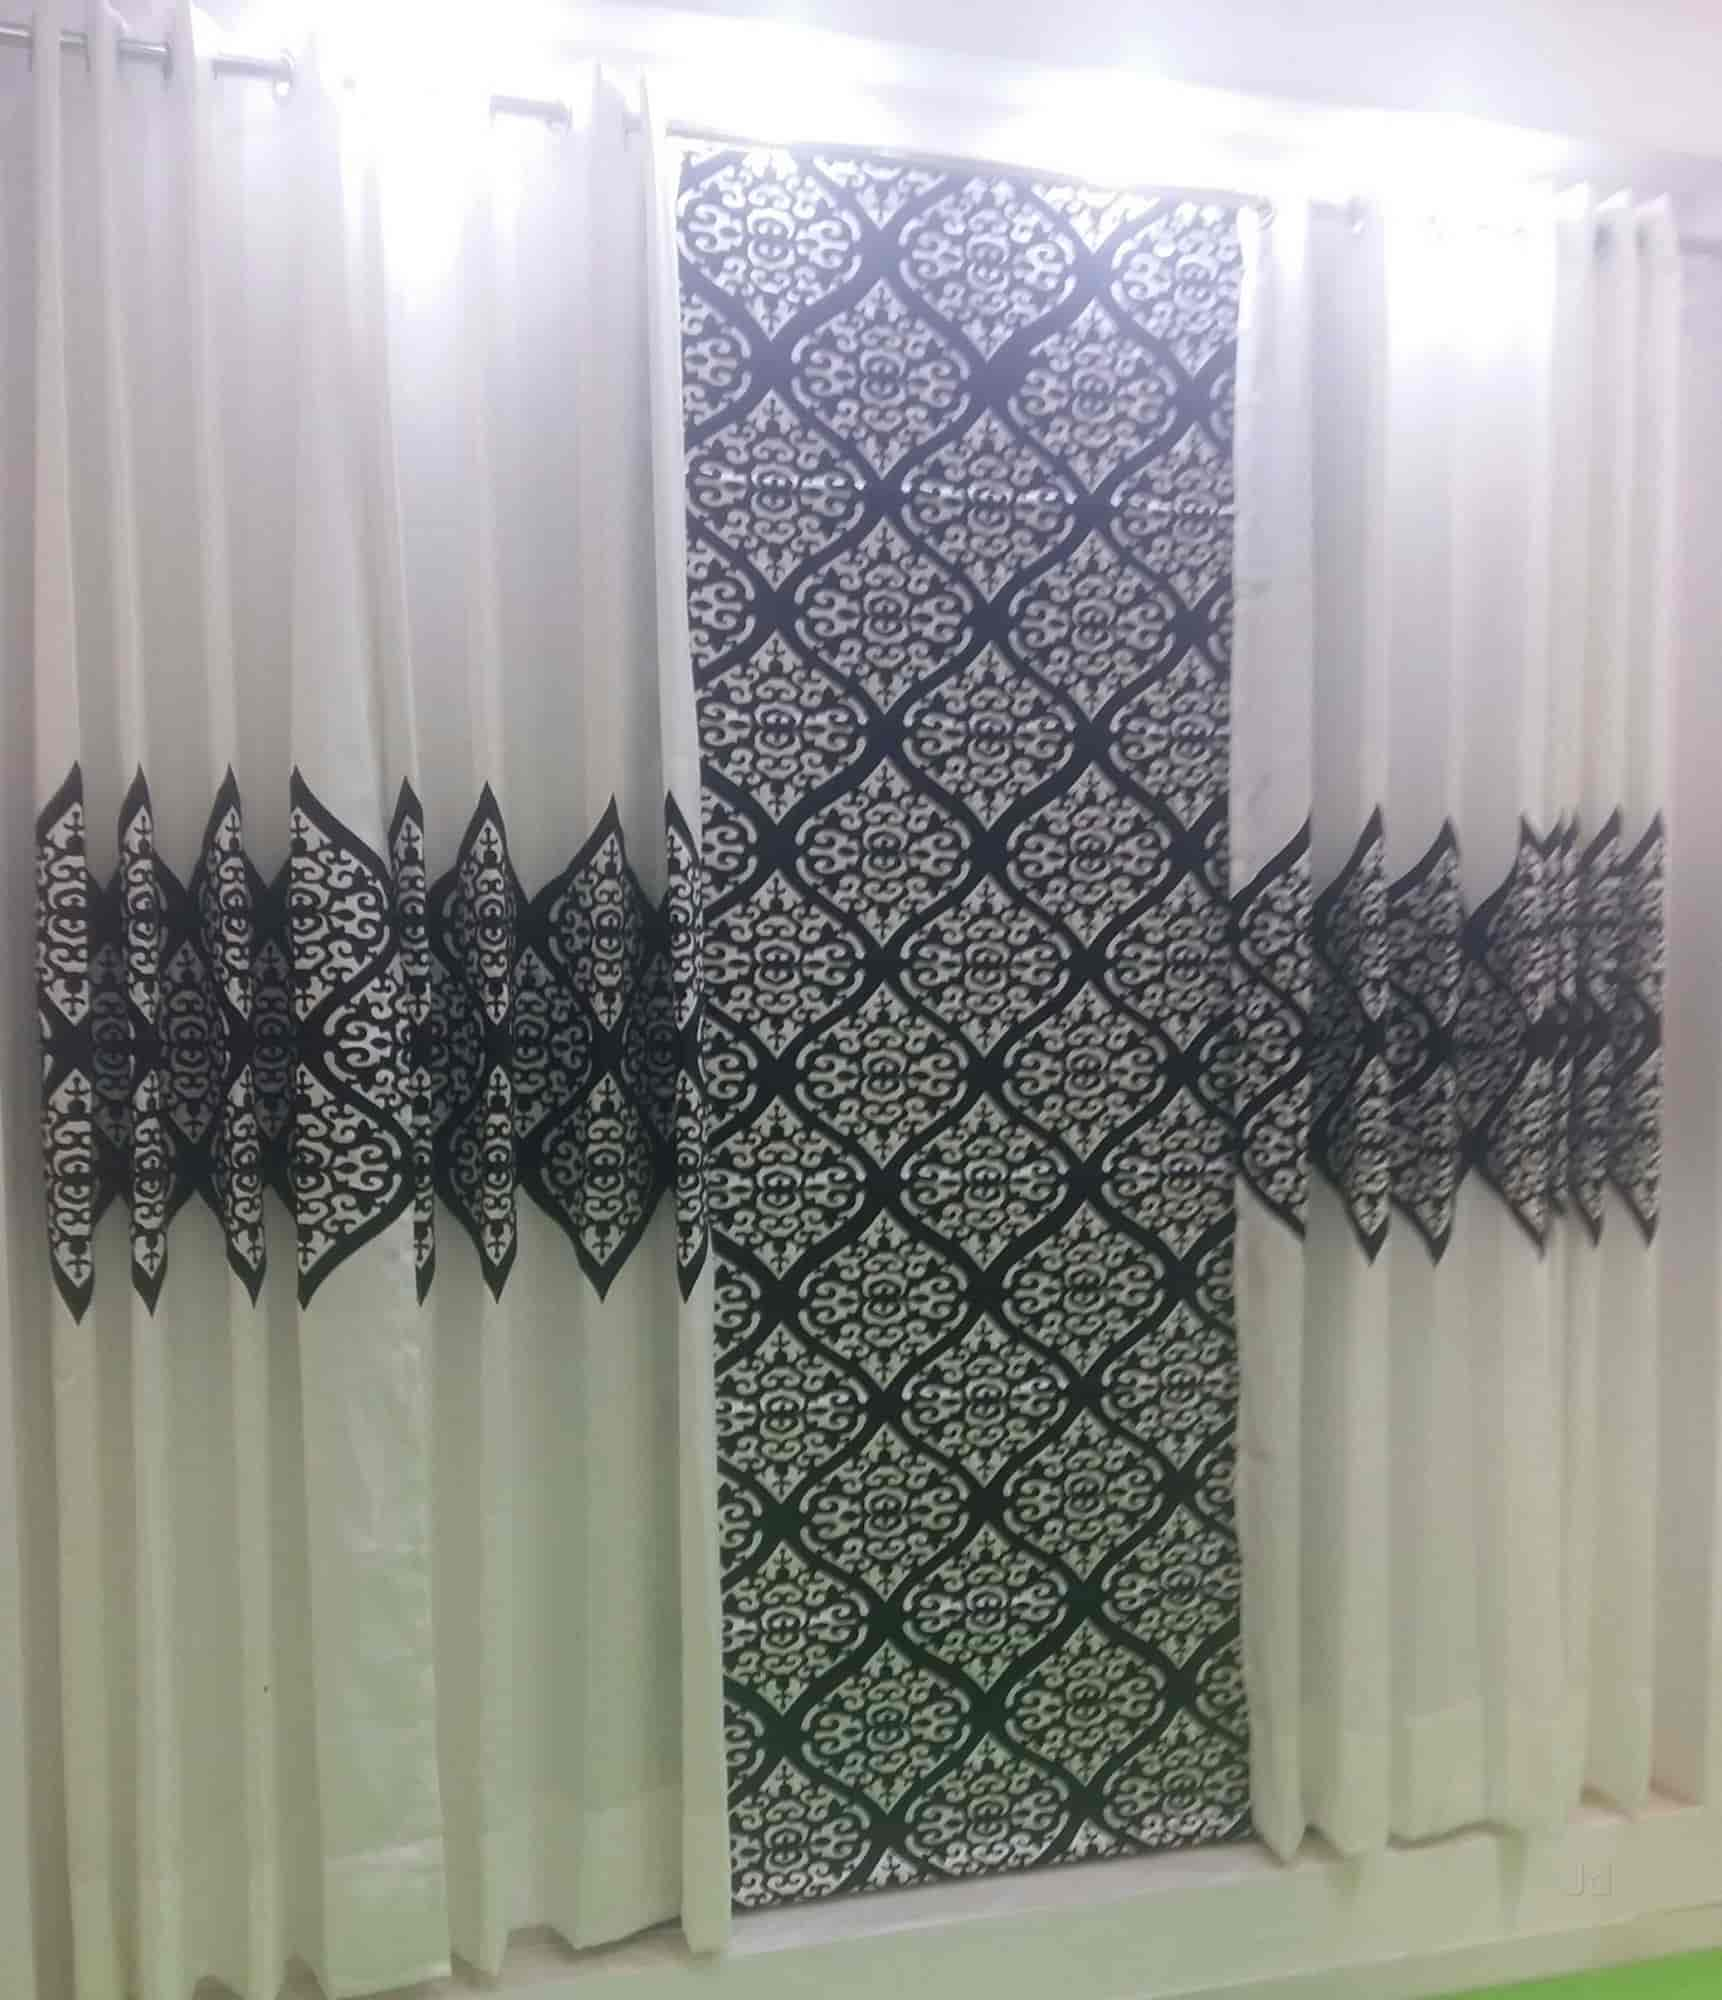 Curtain Fabric Wholesale Indo Fabrics Photos Sector 11 Panipat Pictures Images Gallery